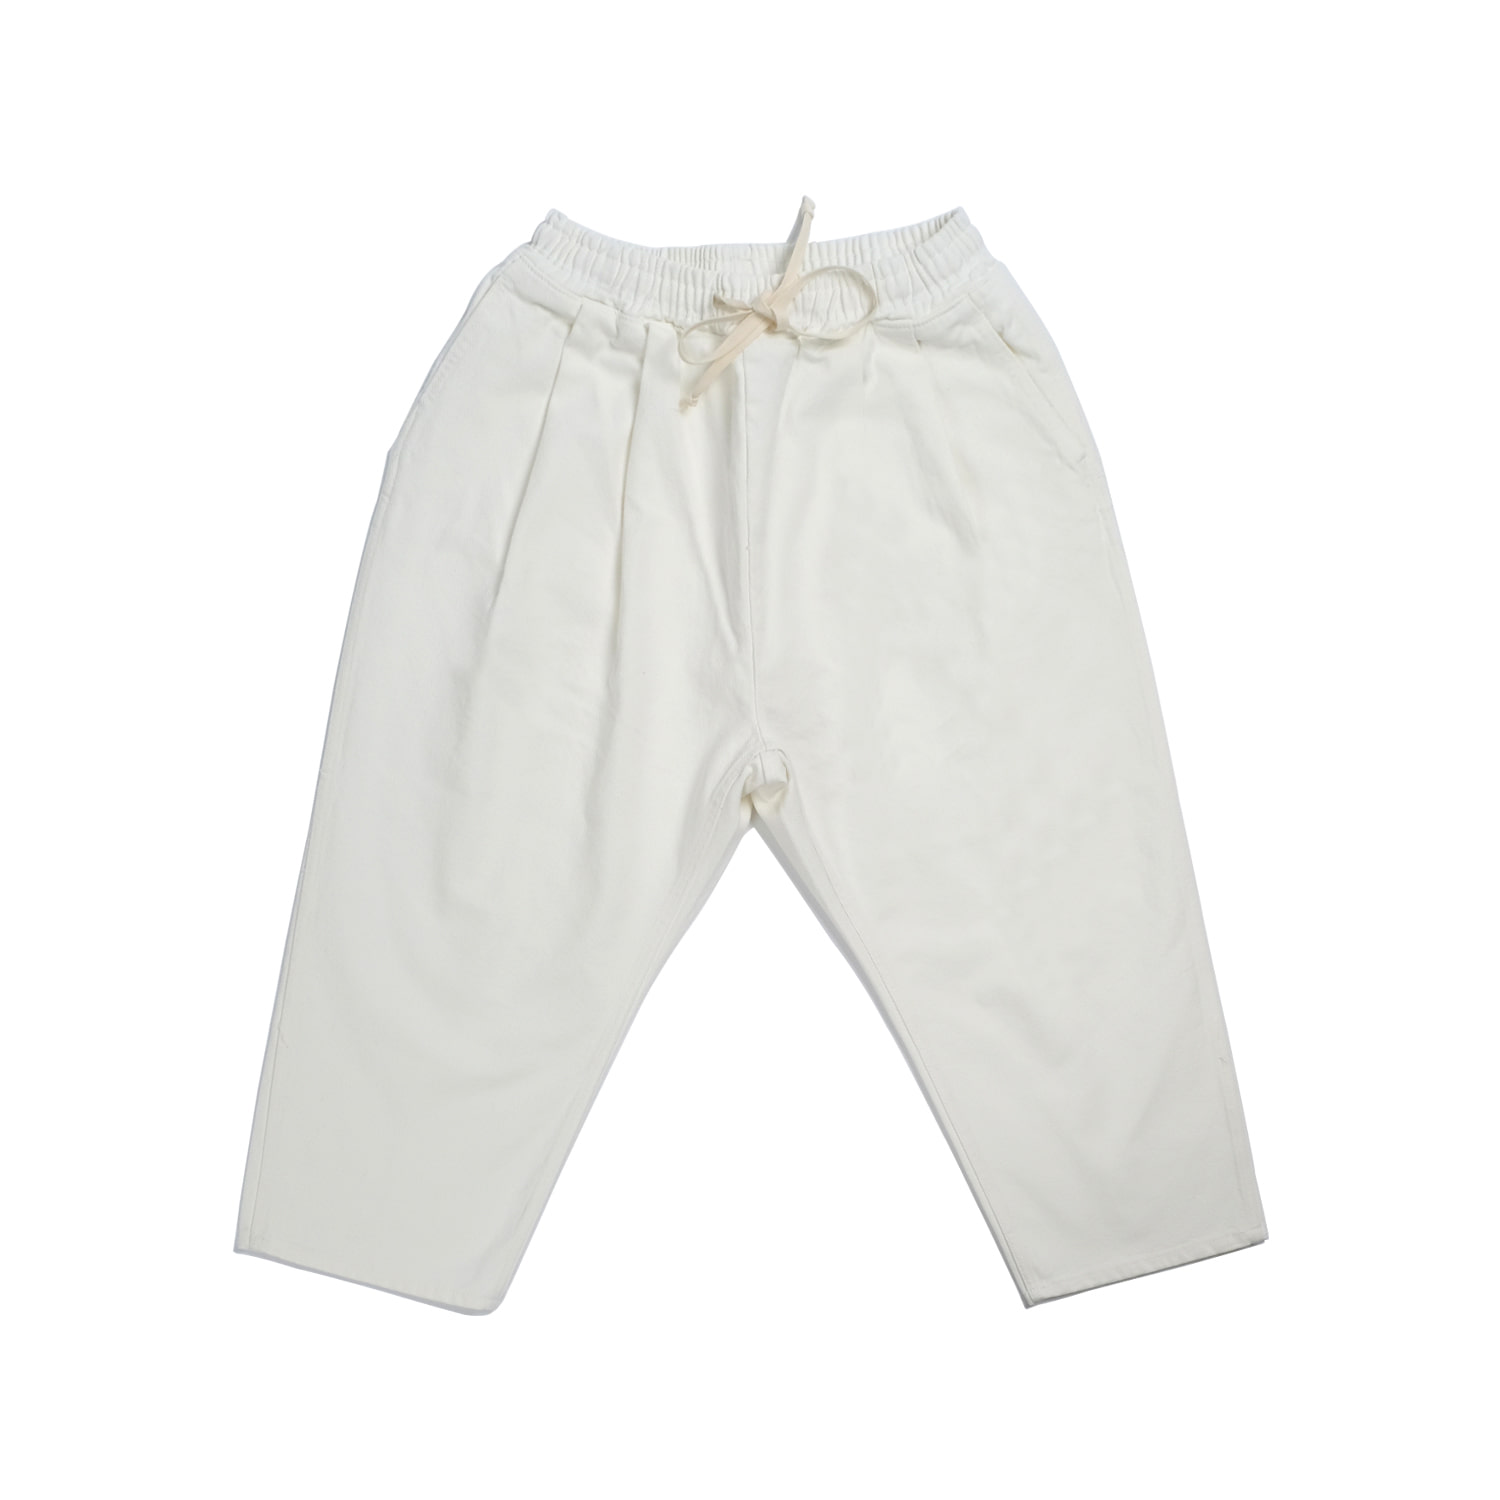 Easy Pants - White